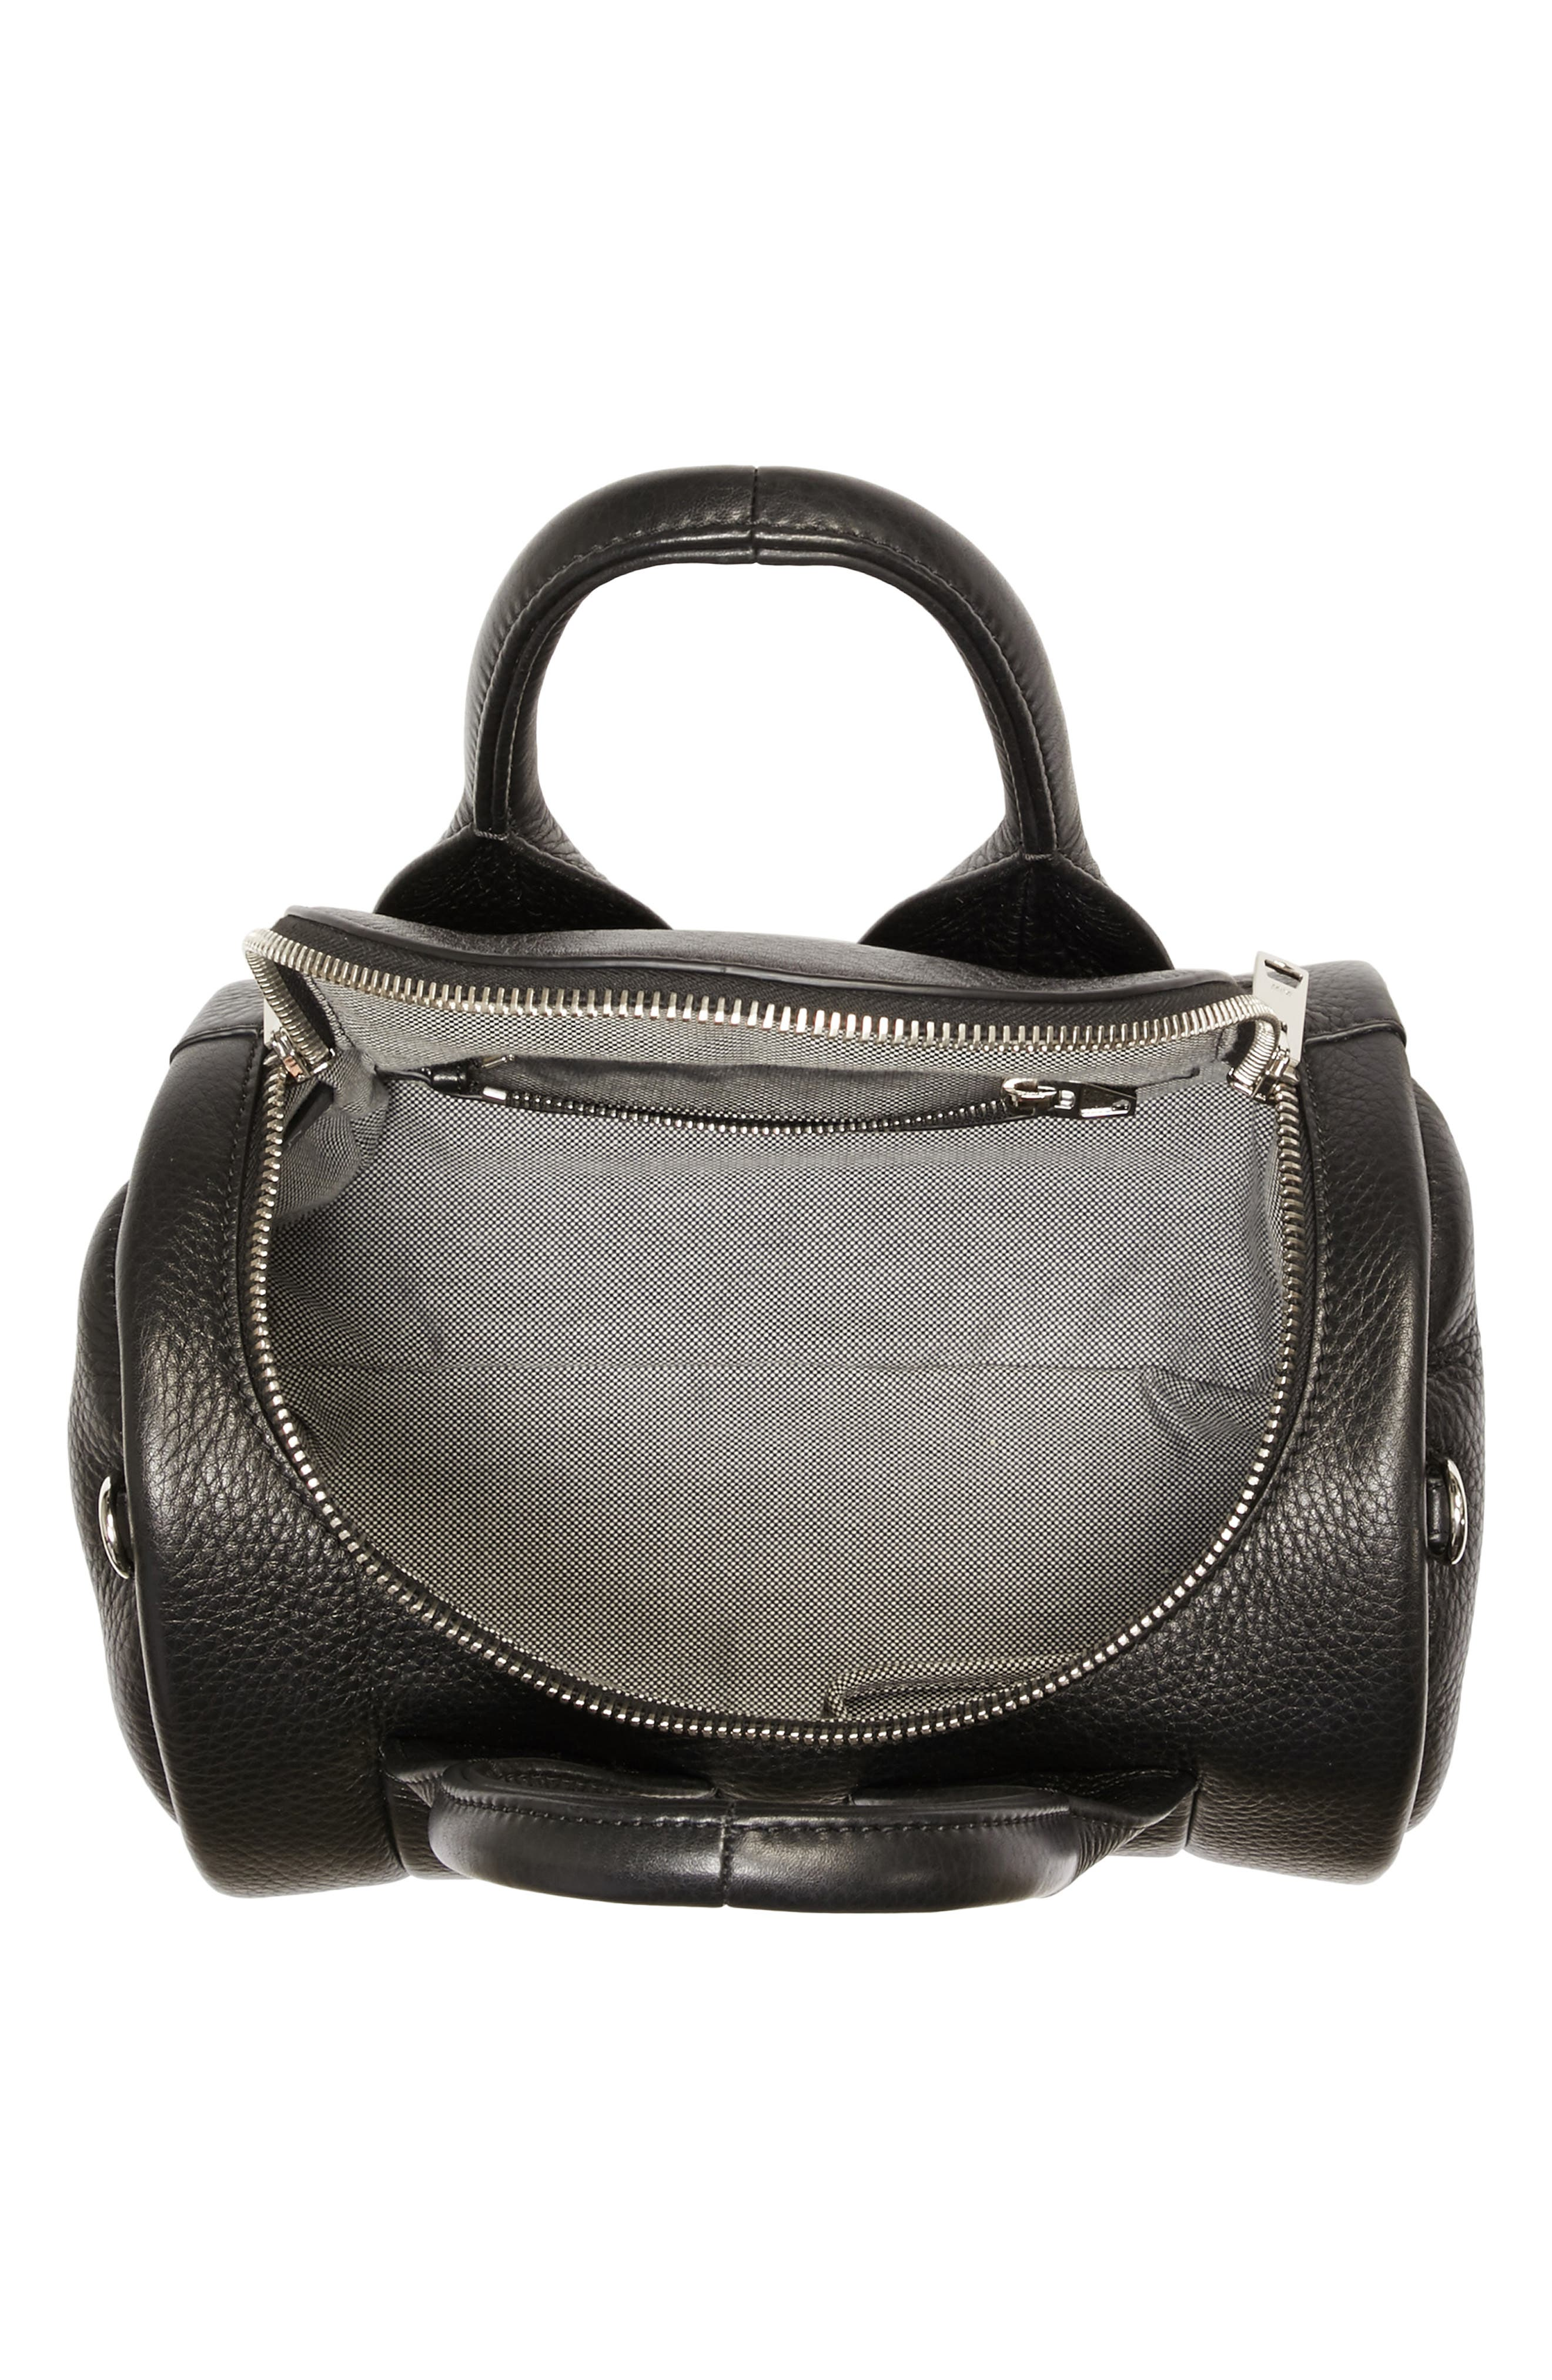 Rockie - Nickel Leather Satchel,                             Alternate thumbnail 4, color,                             001